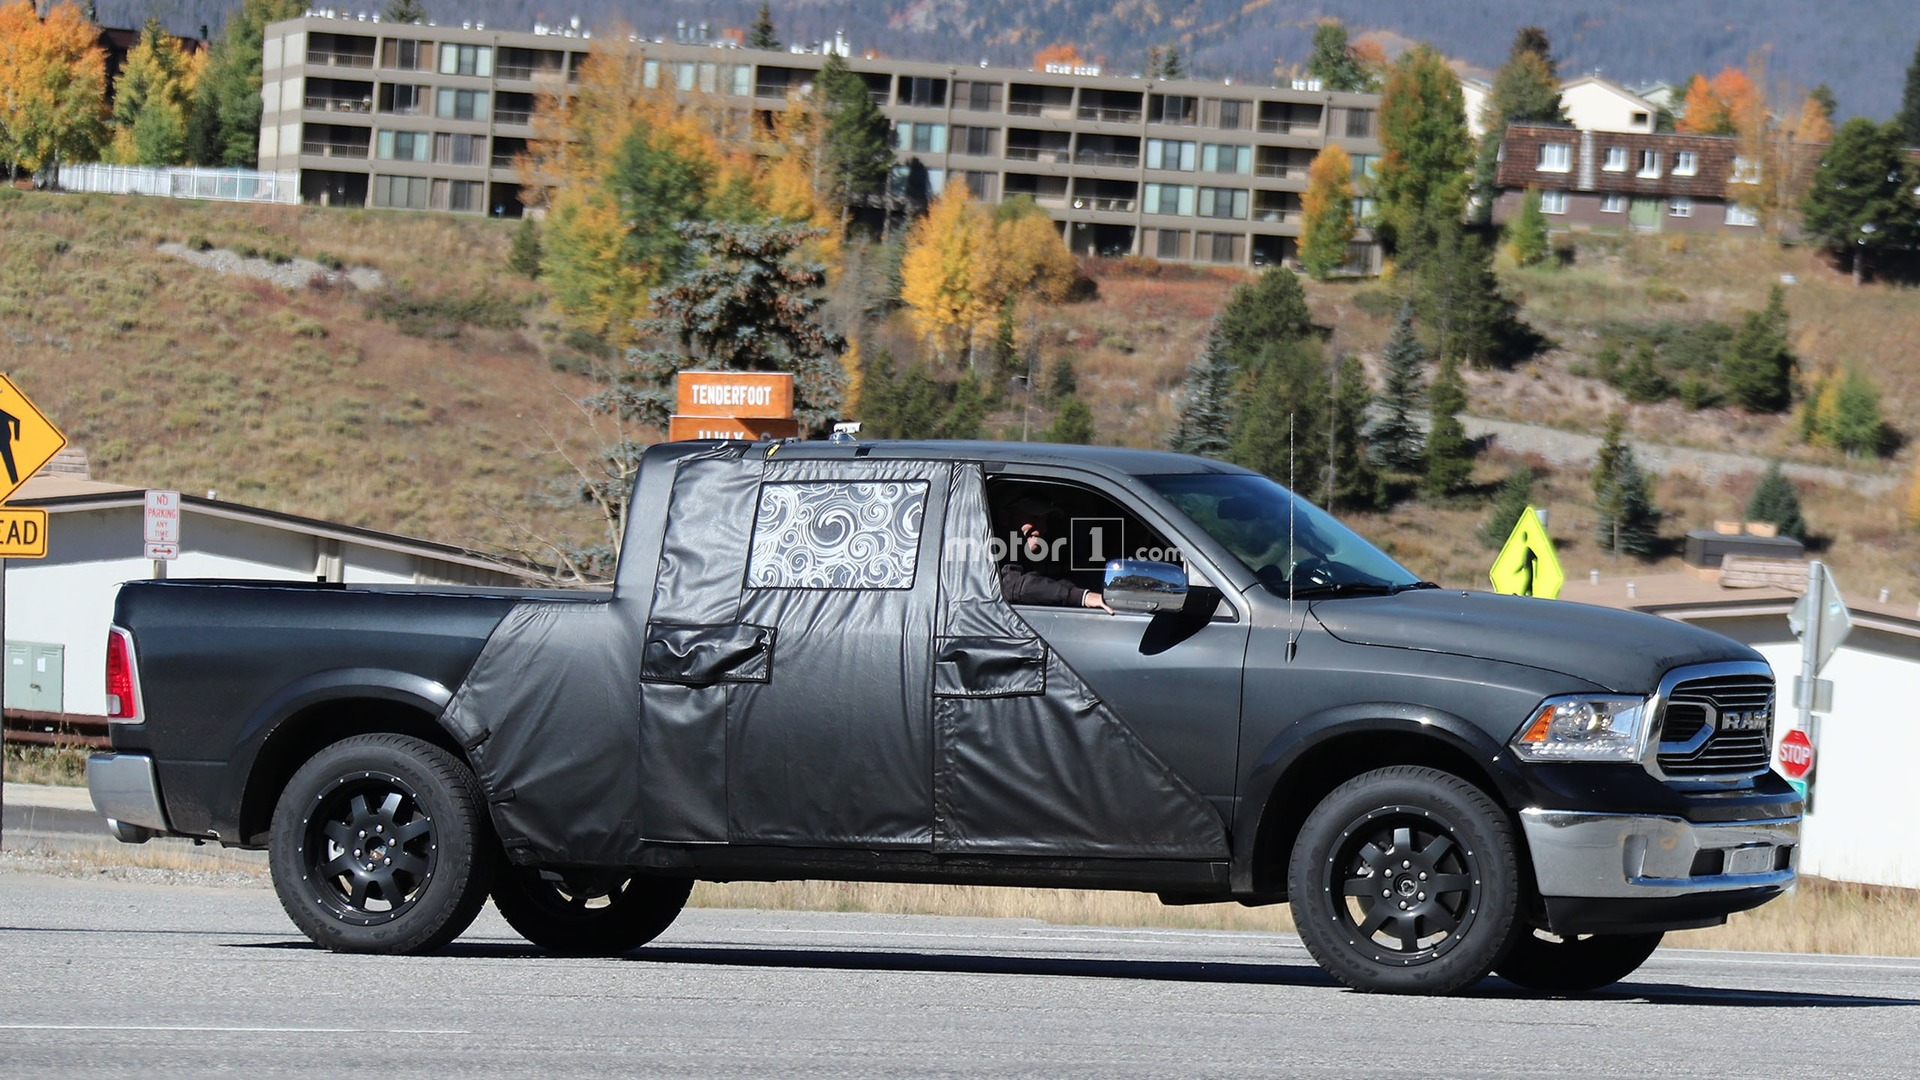 2018 ram mega cab test mule spied with larger cabin. Black Bedroom Furniture Sets. Home Design Ideas